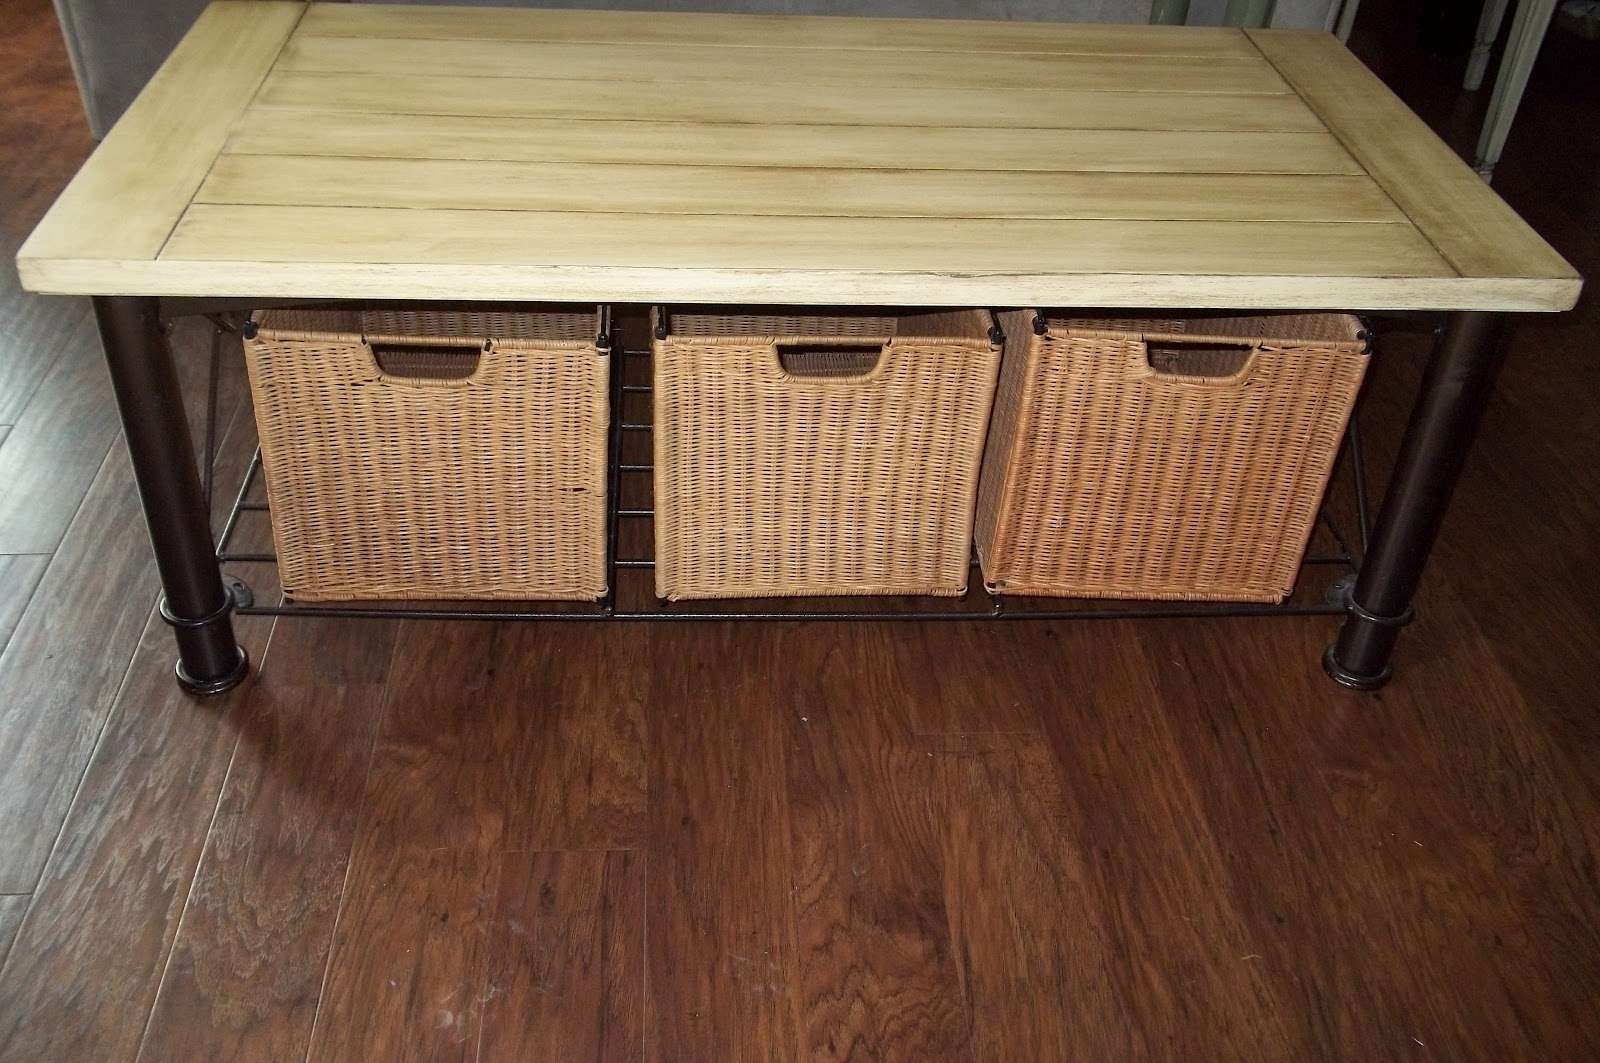 Current Coffee Tables With Baskets Underneath With Regard To Home Decor Coffee Tablesith Basket Storage Black Table (View 6 of 20)